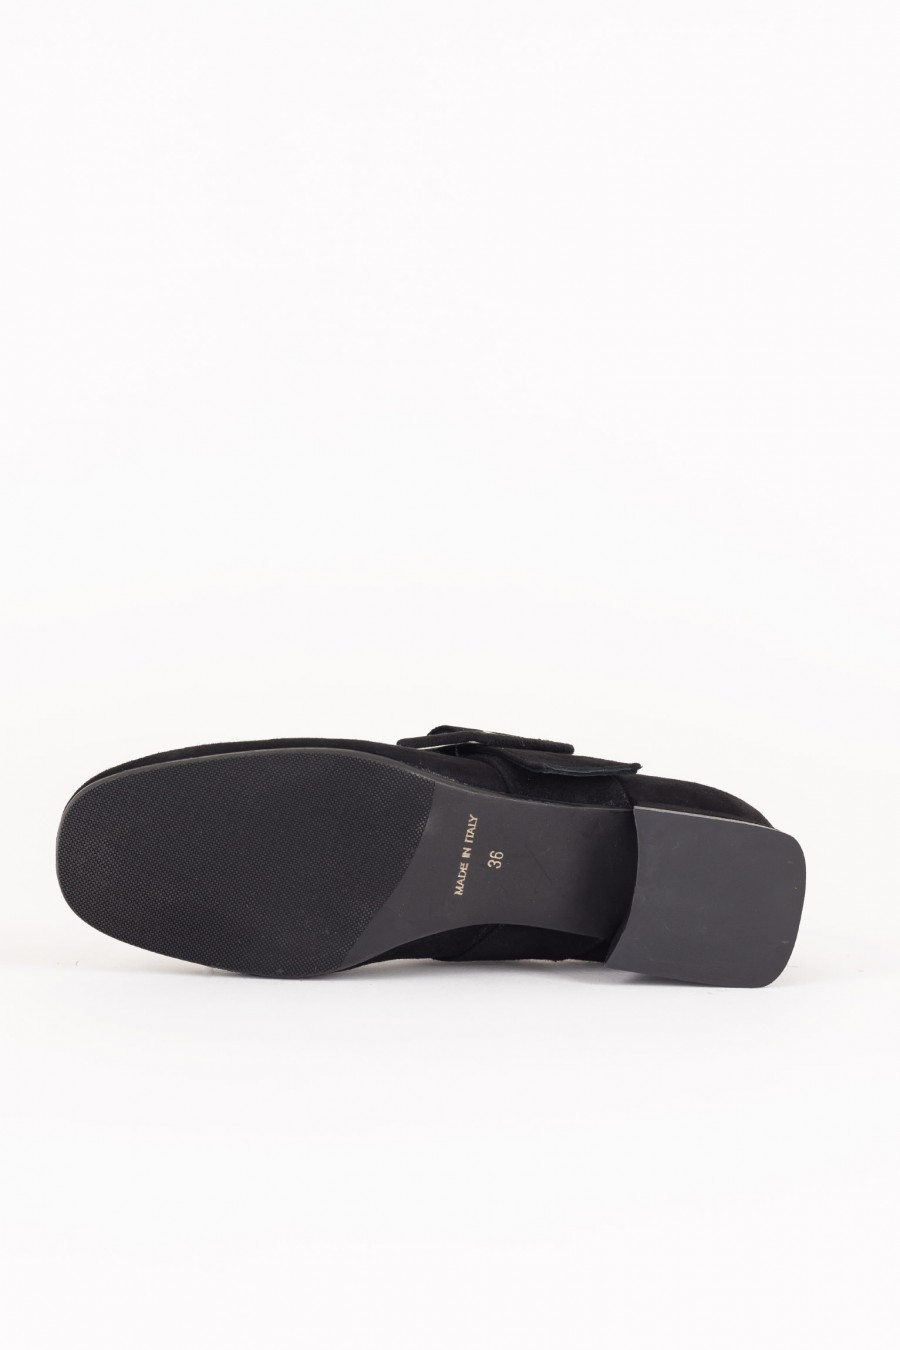 Black suede Mary Jane shoes